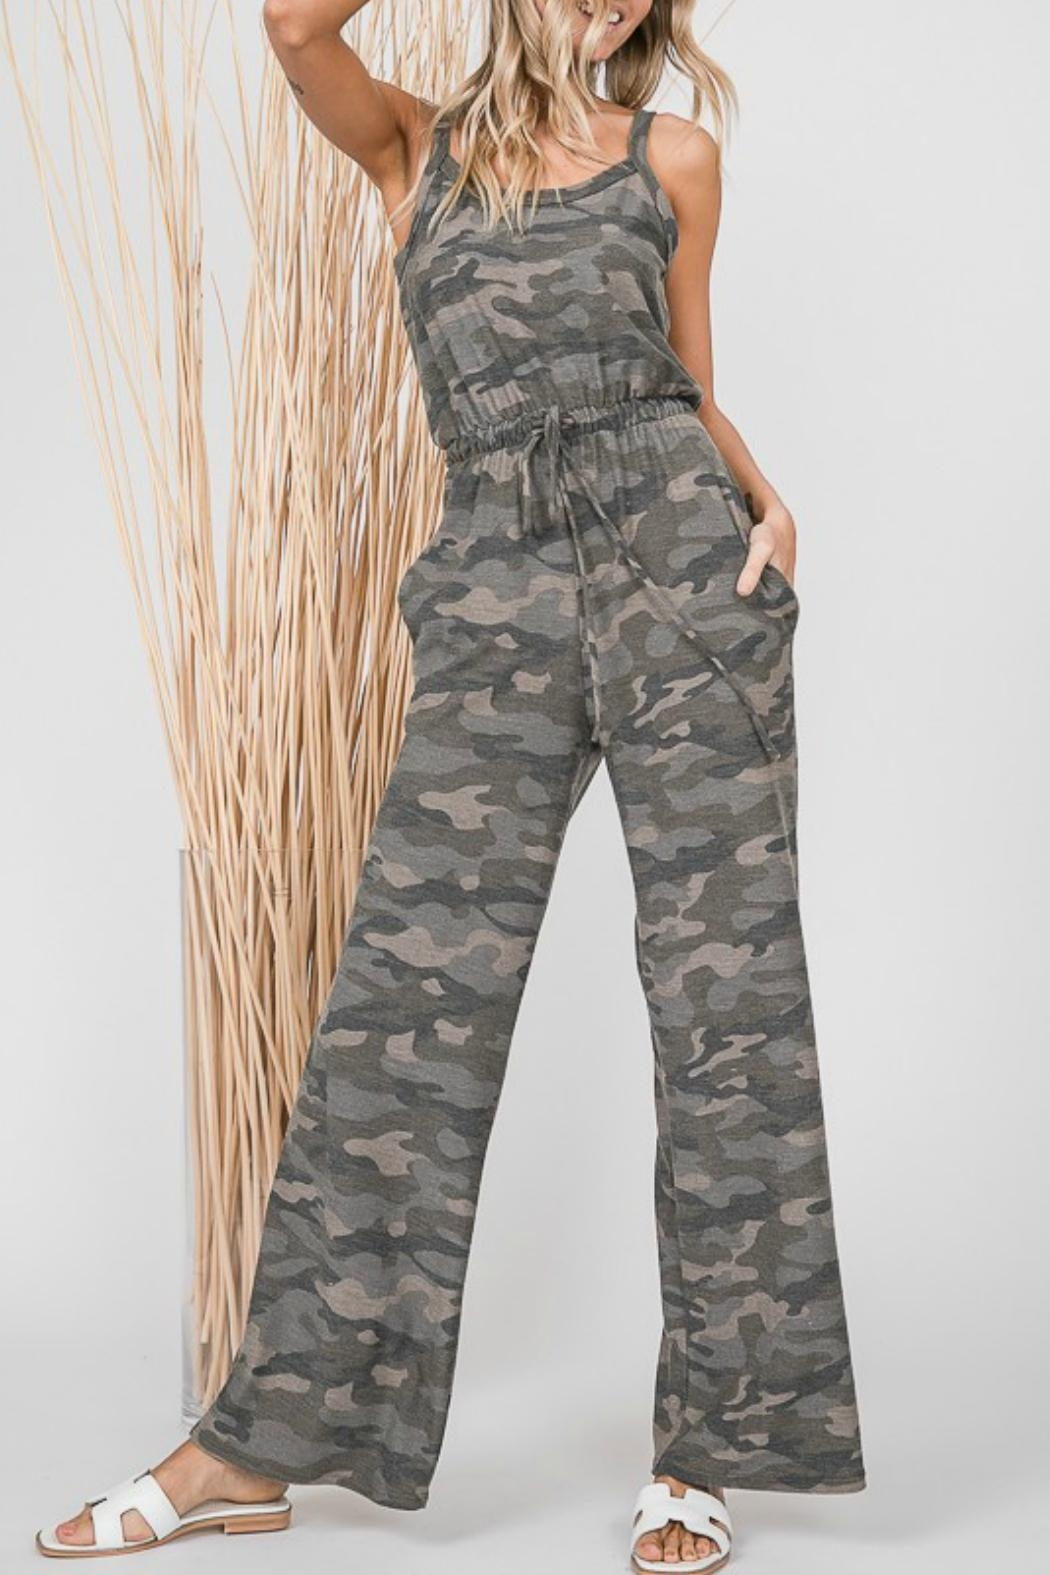 366909253dca8 7th Ray Camo Jumpsuit from California by Tu Si Bella Boutique ...